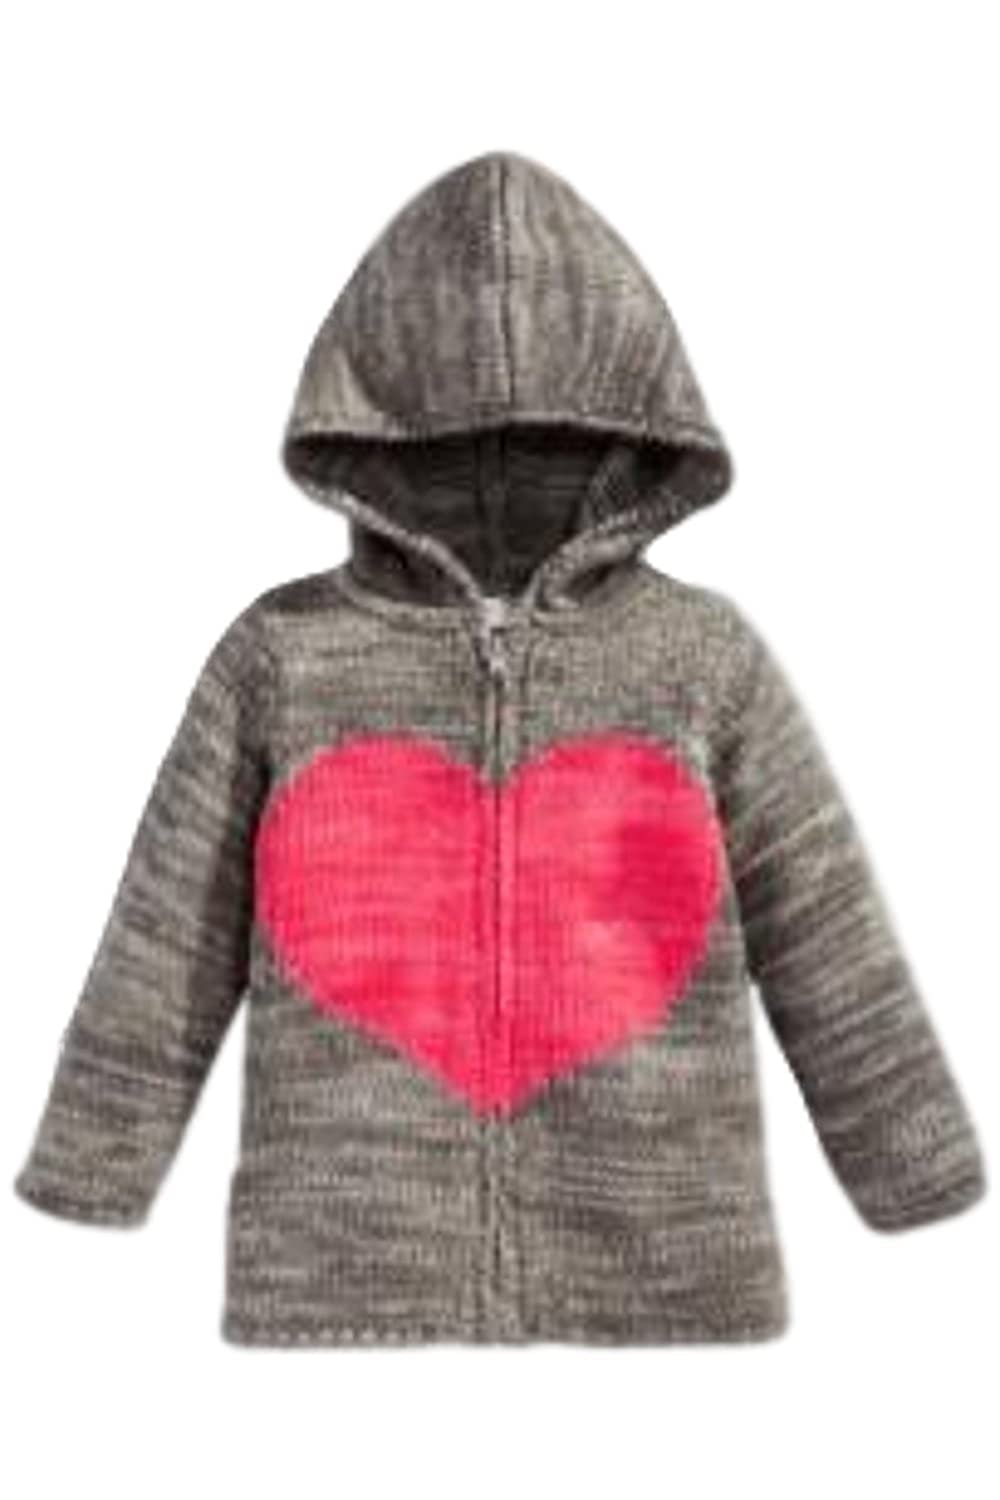 FEITONG Toddler Little Boys Girls Rainbow Sweater Knit Pullovers Outerwear Clothes